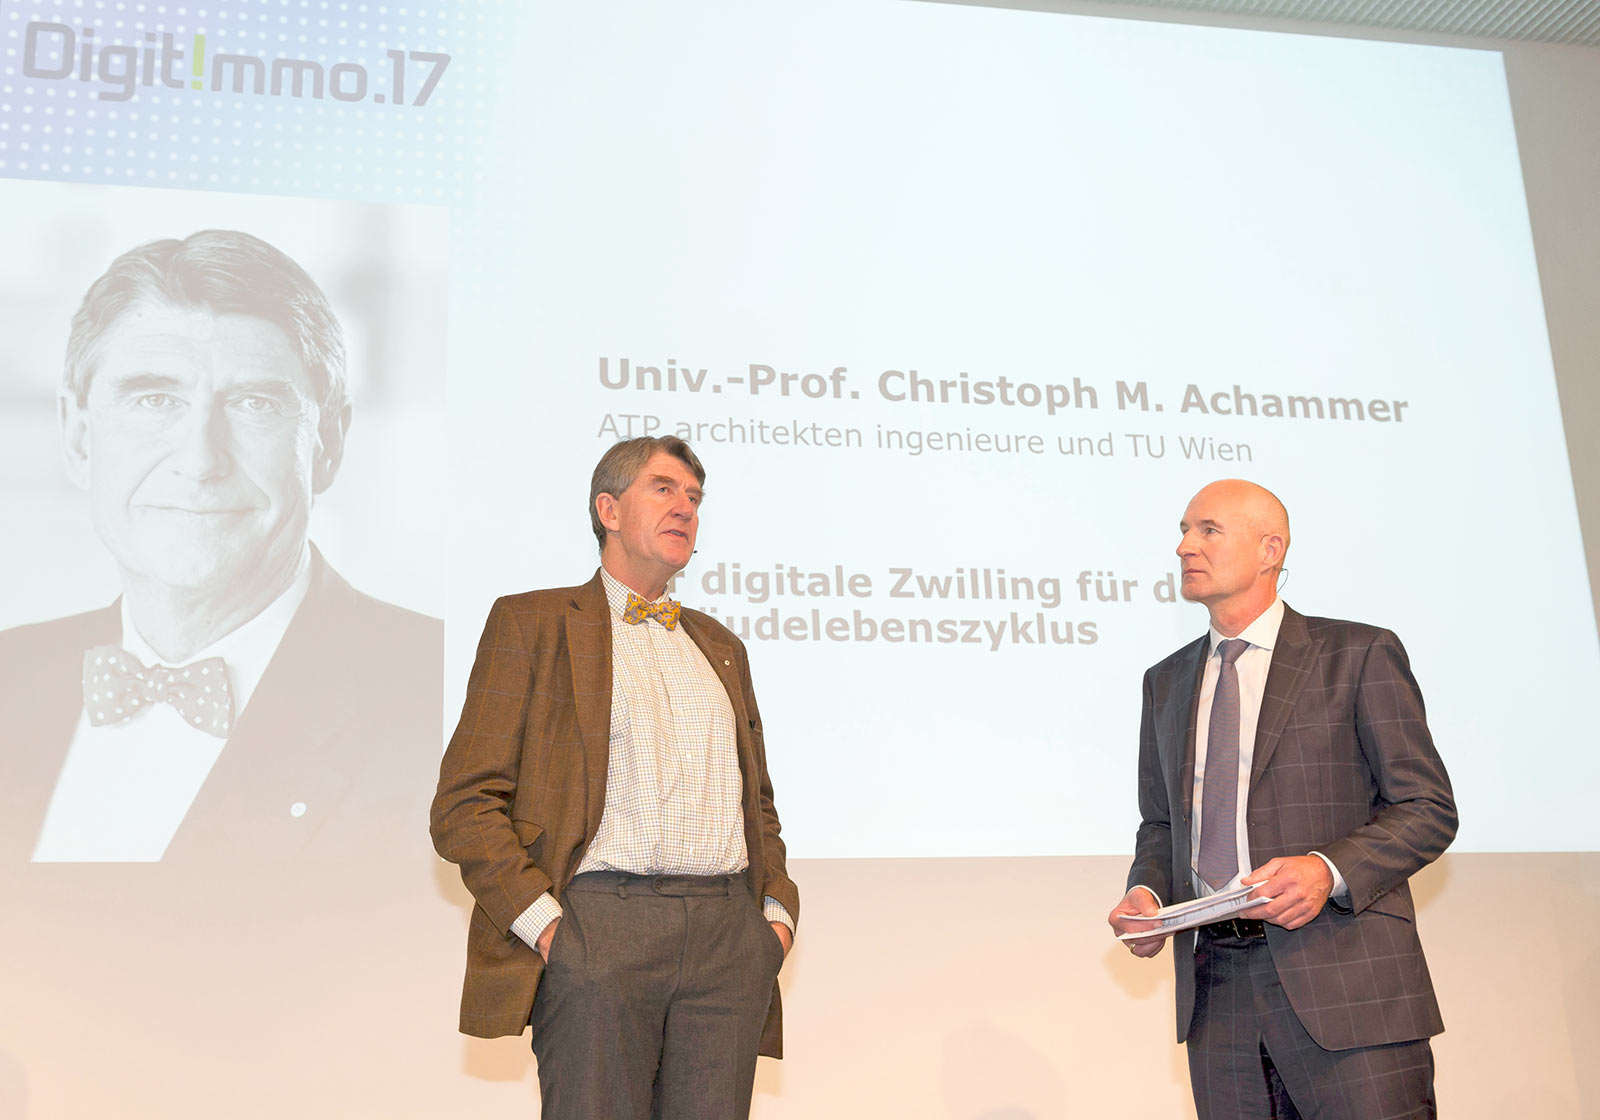 ATP CEO Christoph M. Achammer and moderator Steffen Lukesch. Photo: Marco Blessano